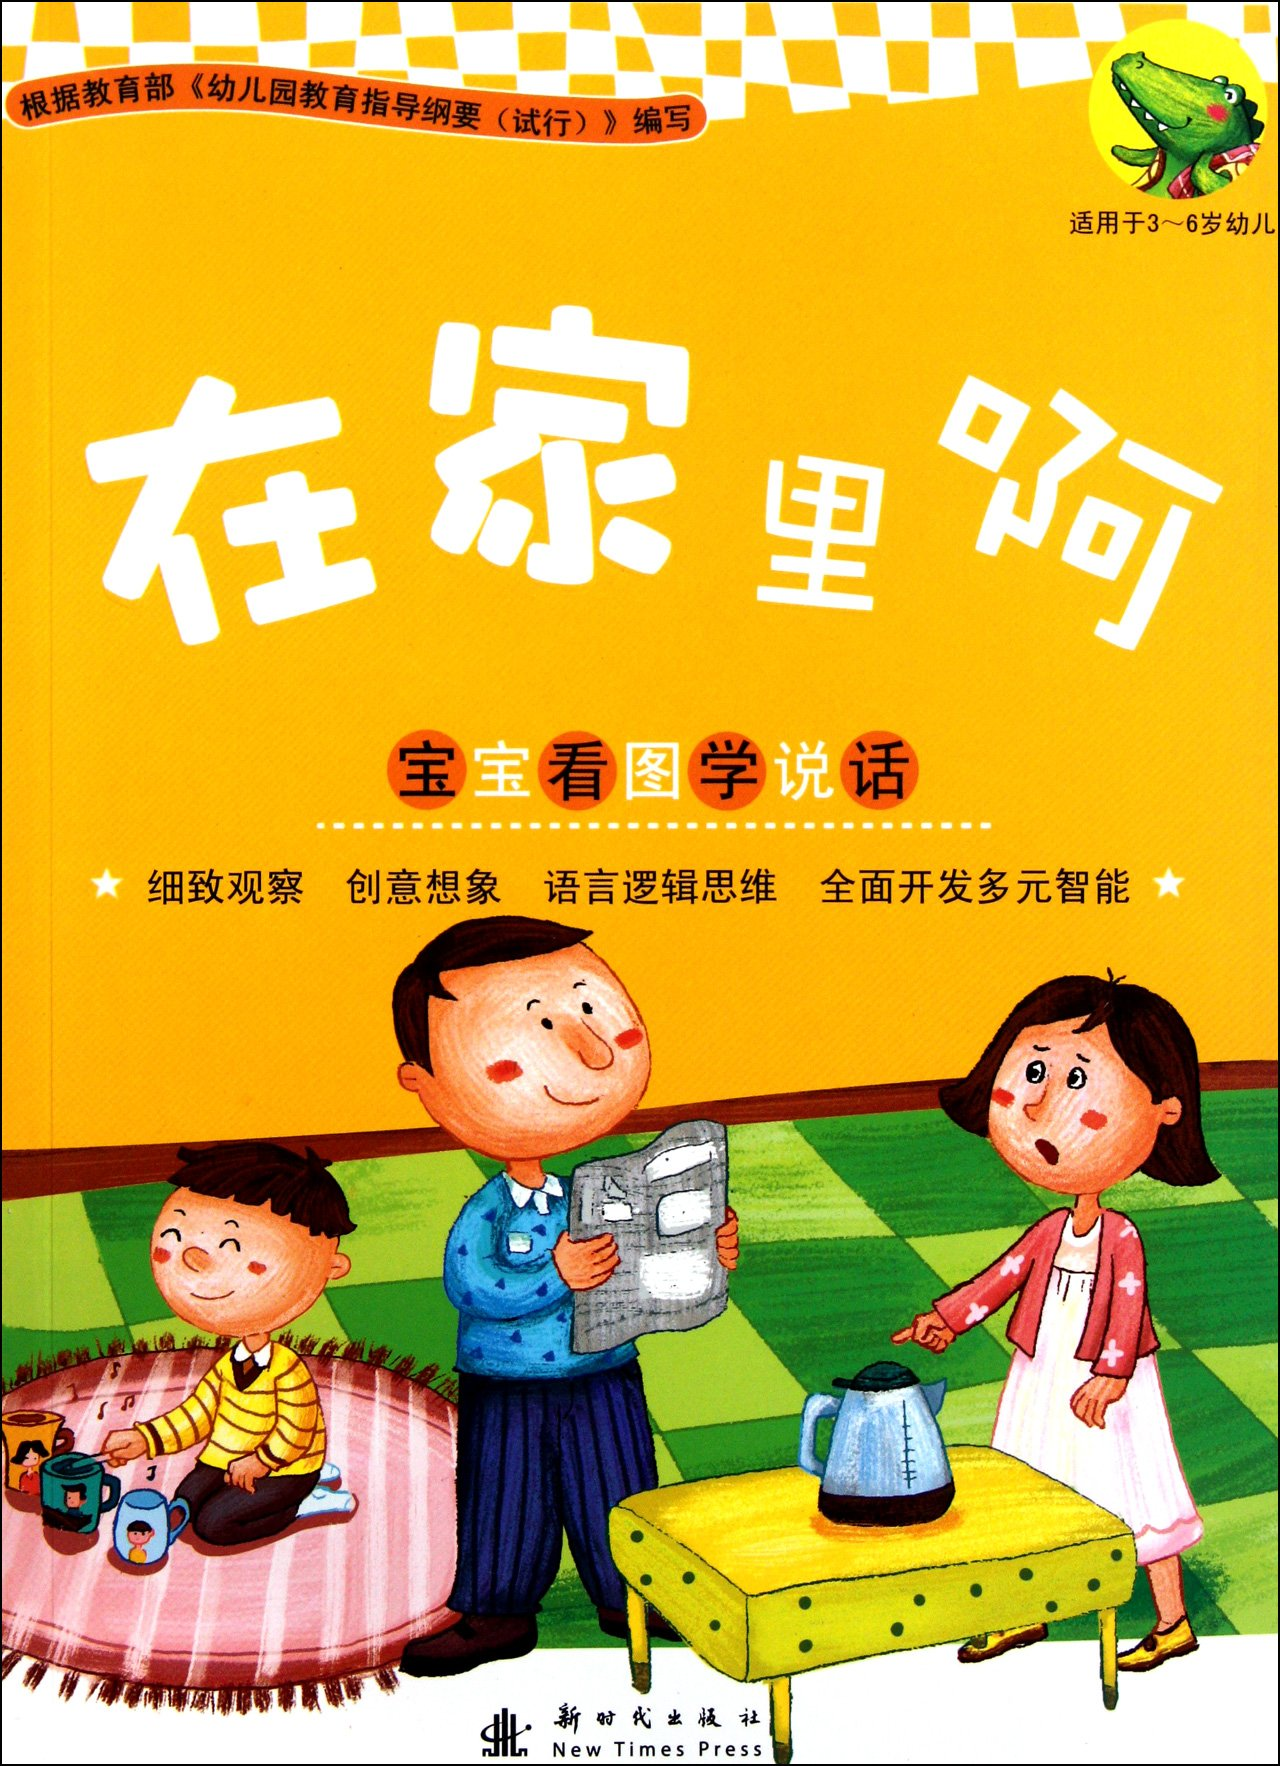 Read Online 3-6 Years Old - at Home - Baby Learns to Speak according to Pictures (Chinese Edition) ebook